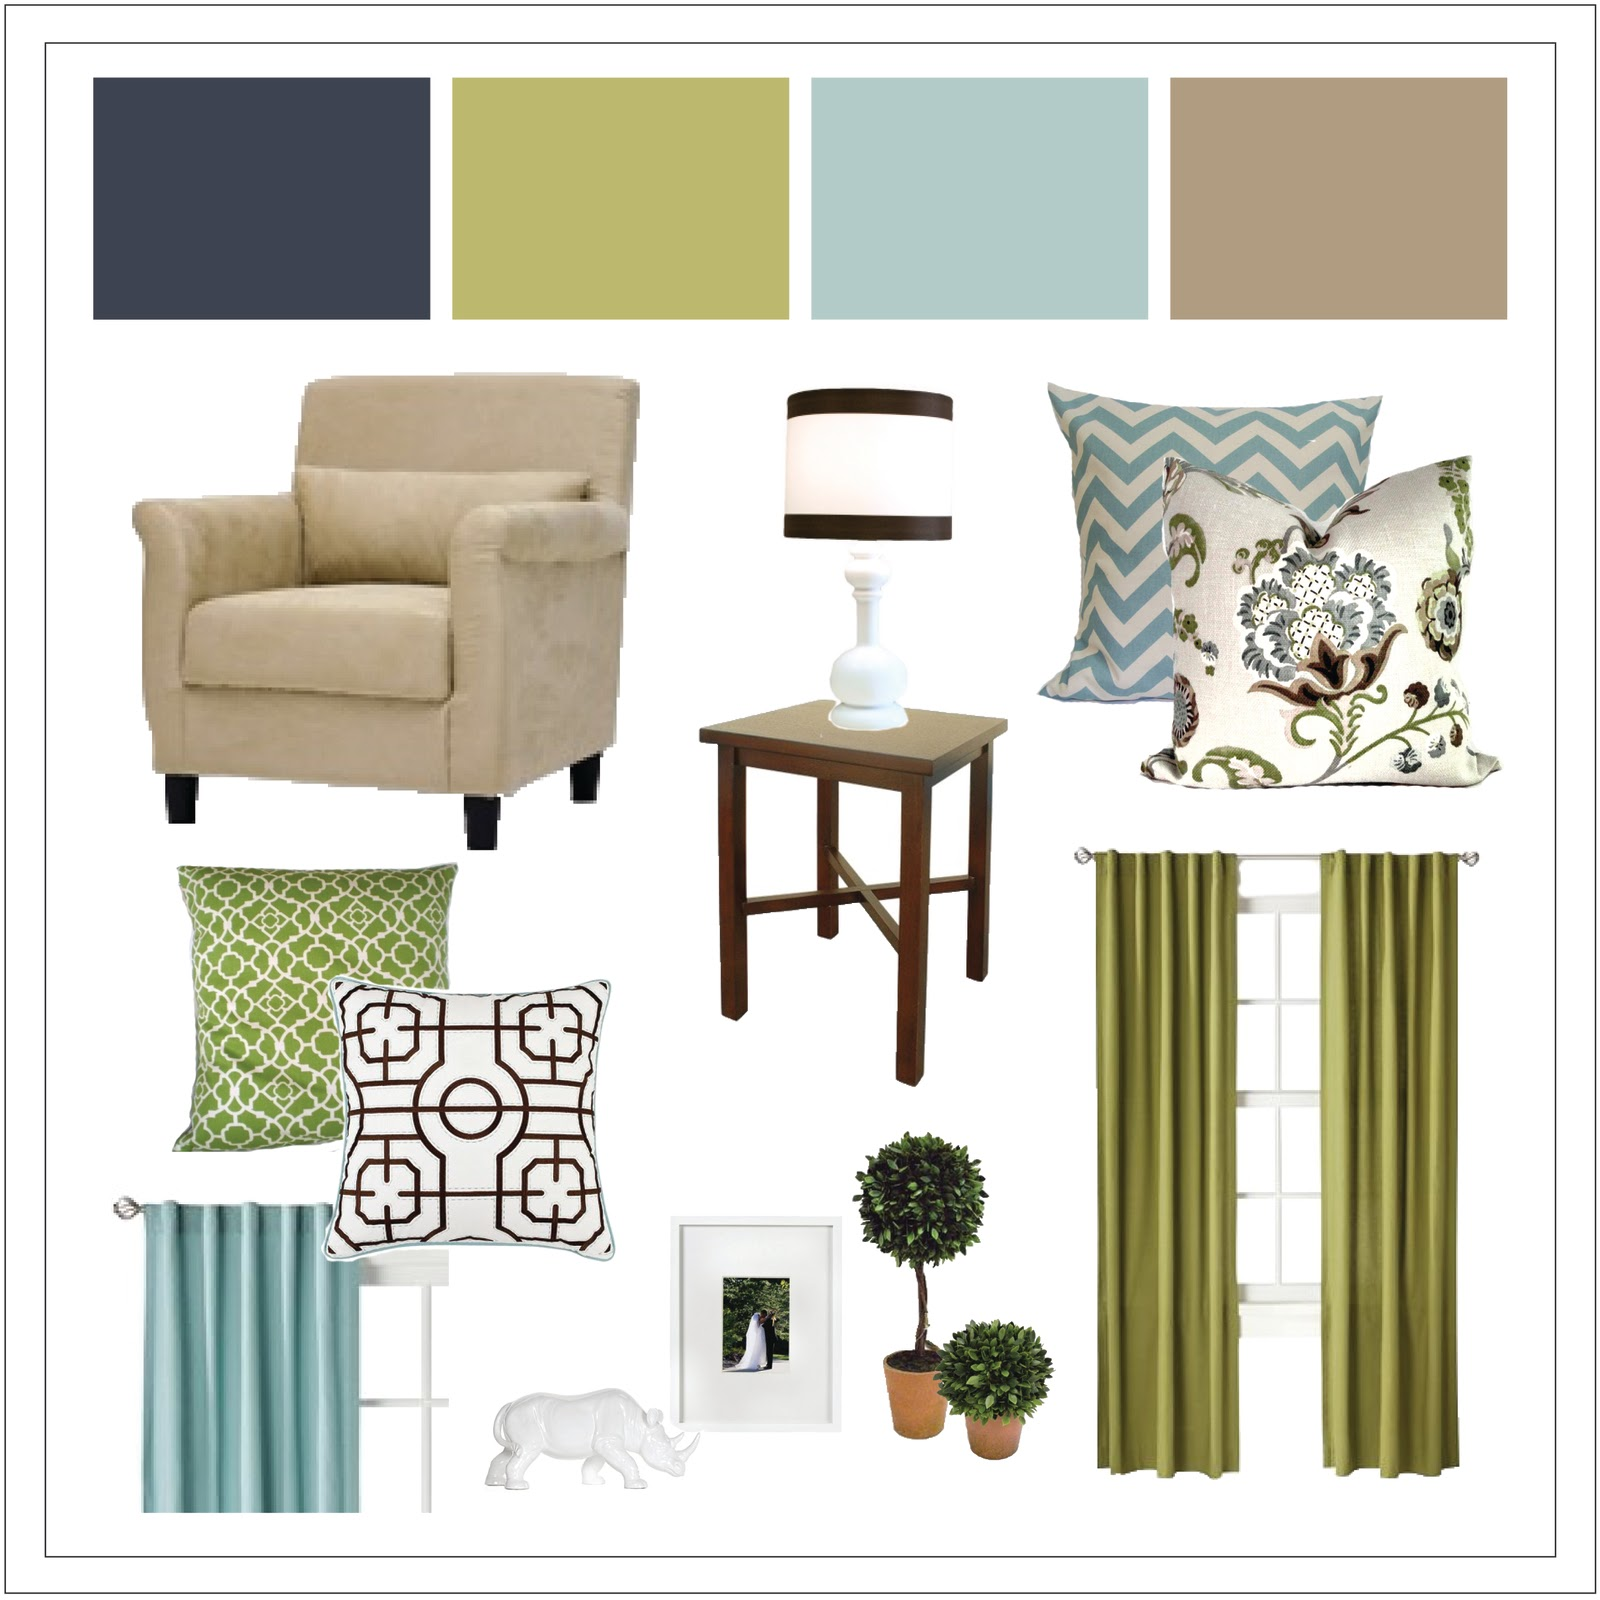 Numbered Street Designs: Online Living Room Design Board